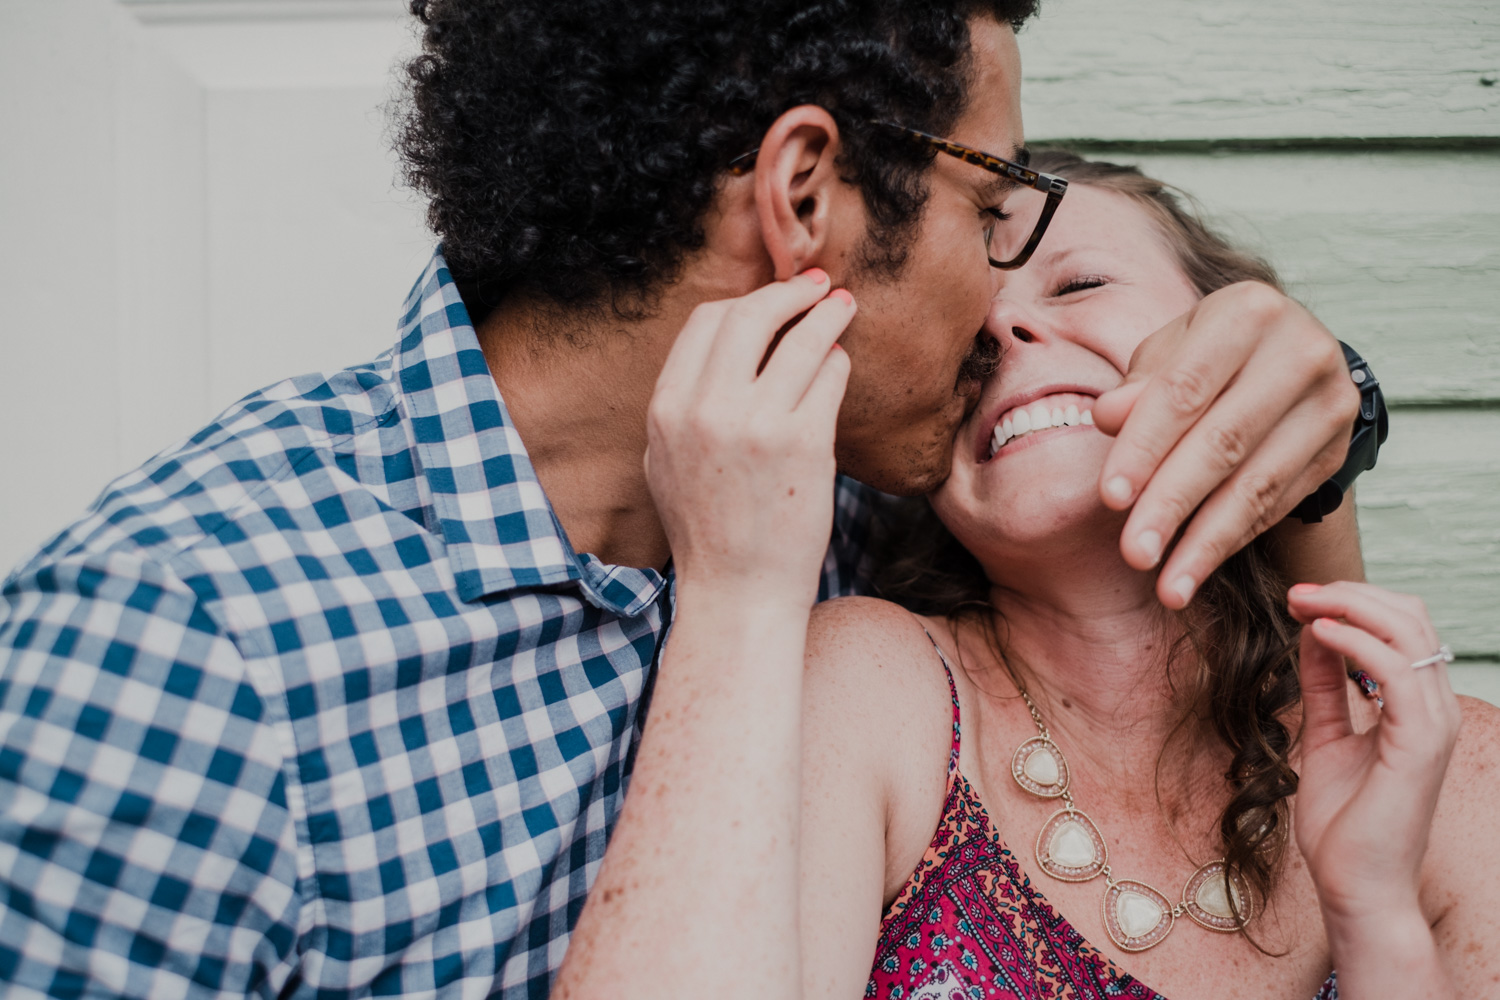 guy goes in for a slobbery face kiss during engagement session